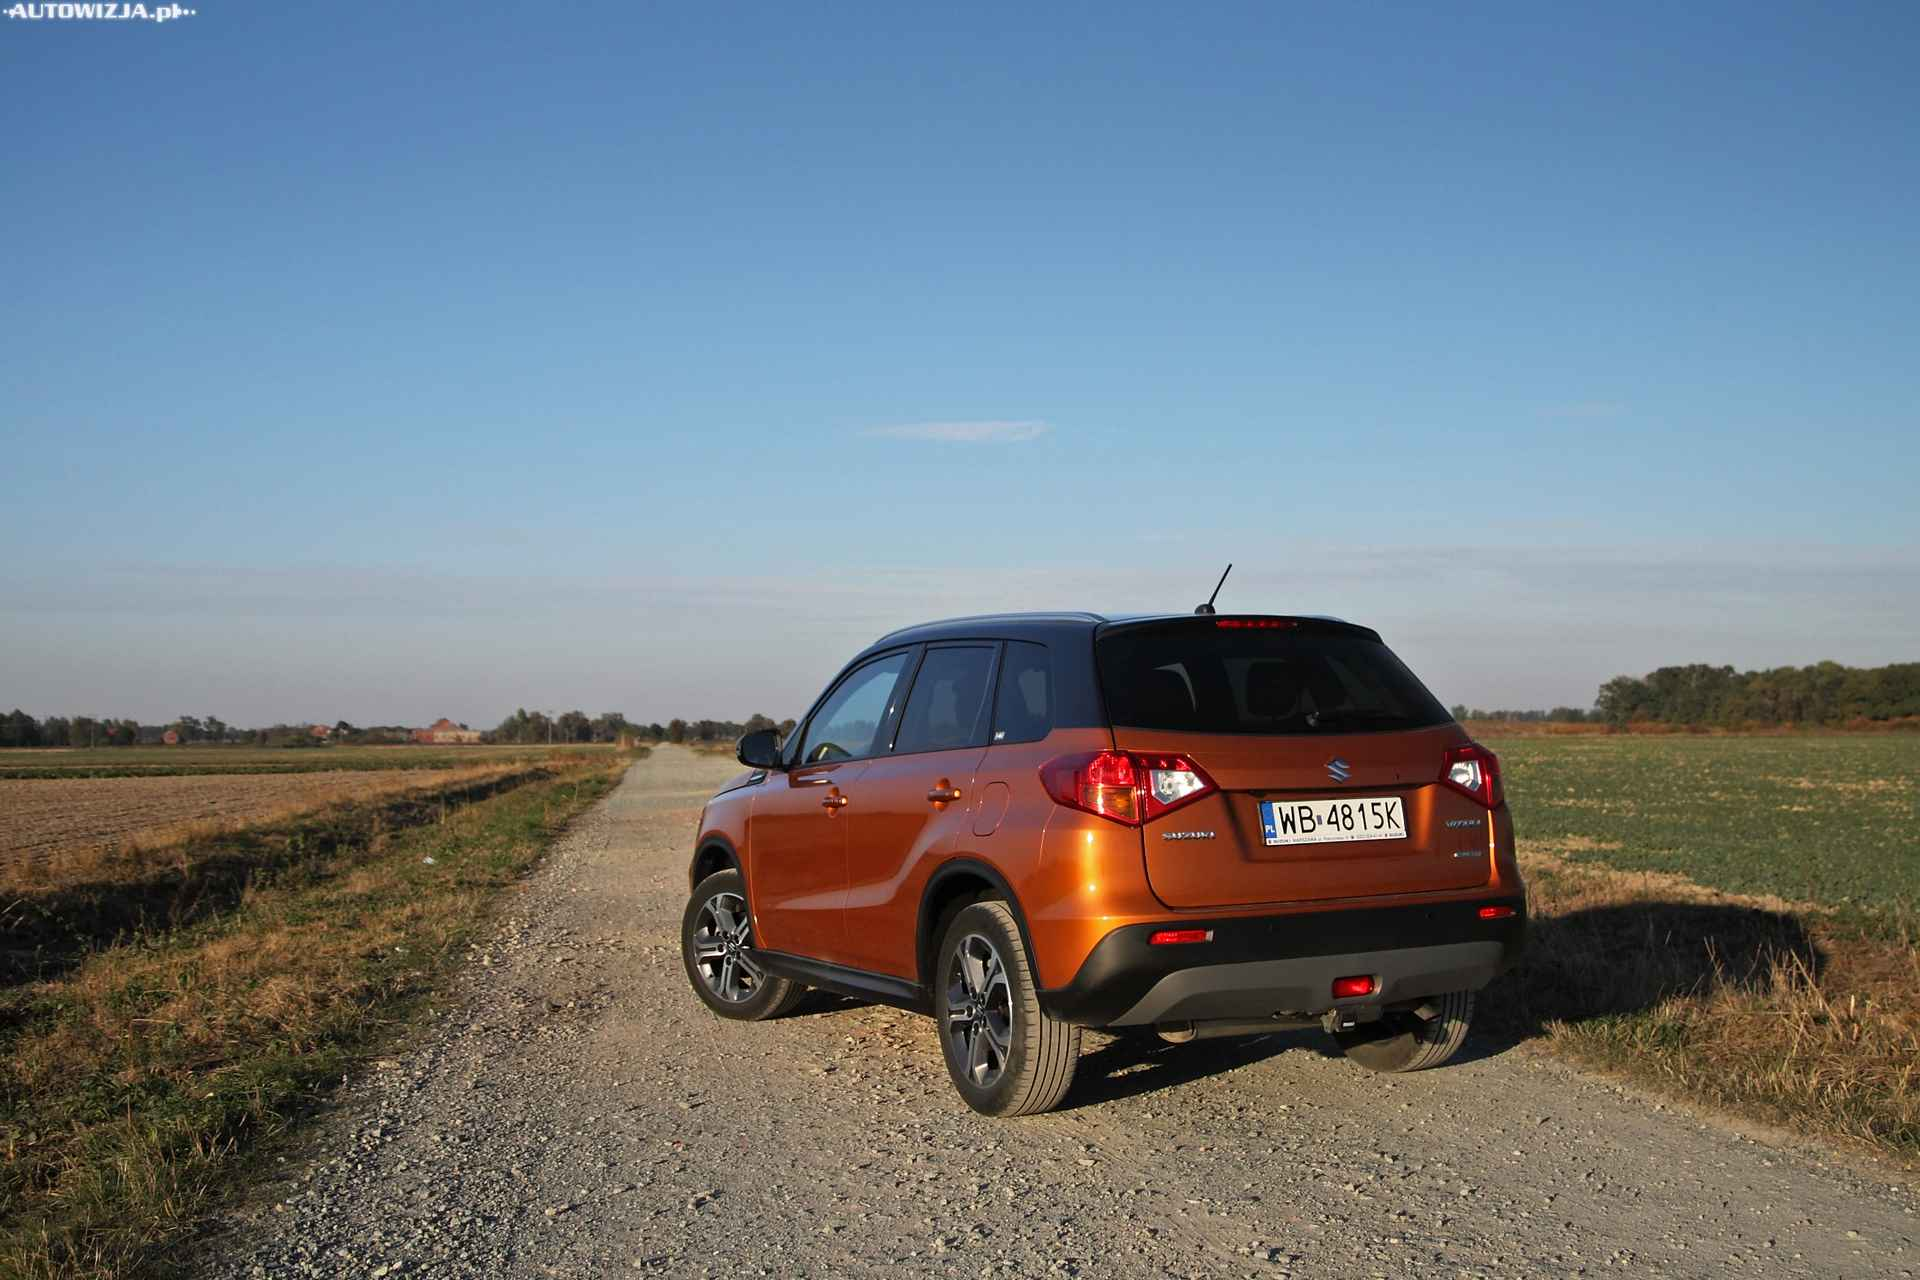 suzuki vitara 1 6 vvt 4wd 5 m t xled auto test motoryzacja. Black Bedroom Furniture Sets. Home Design Ideas